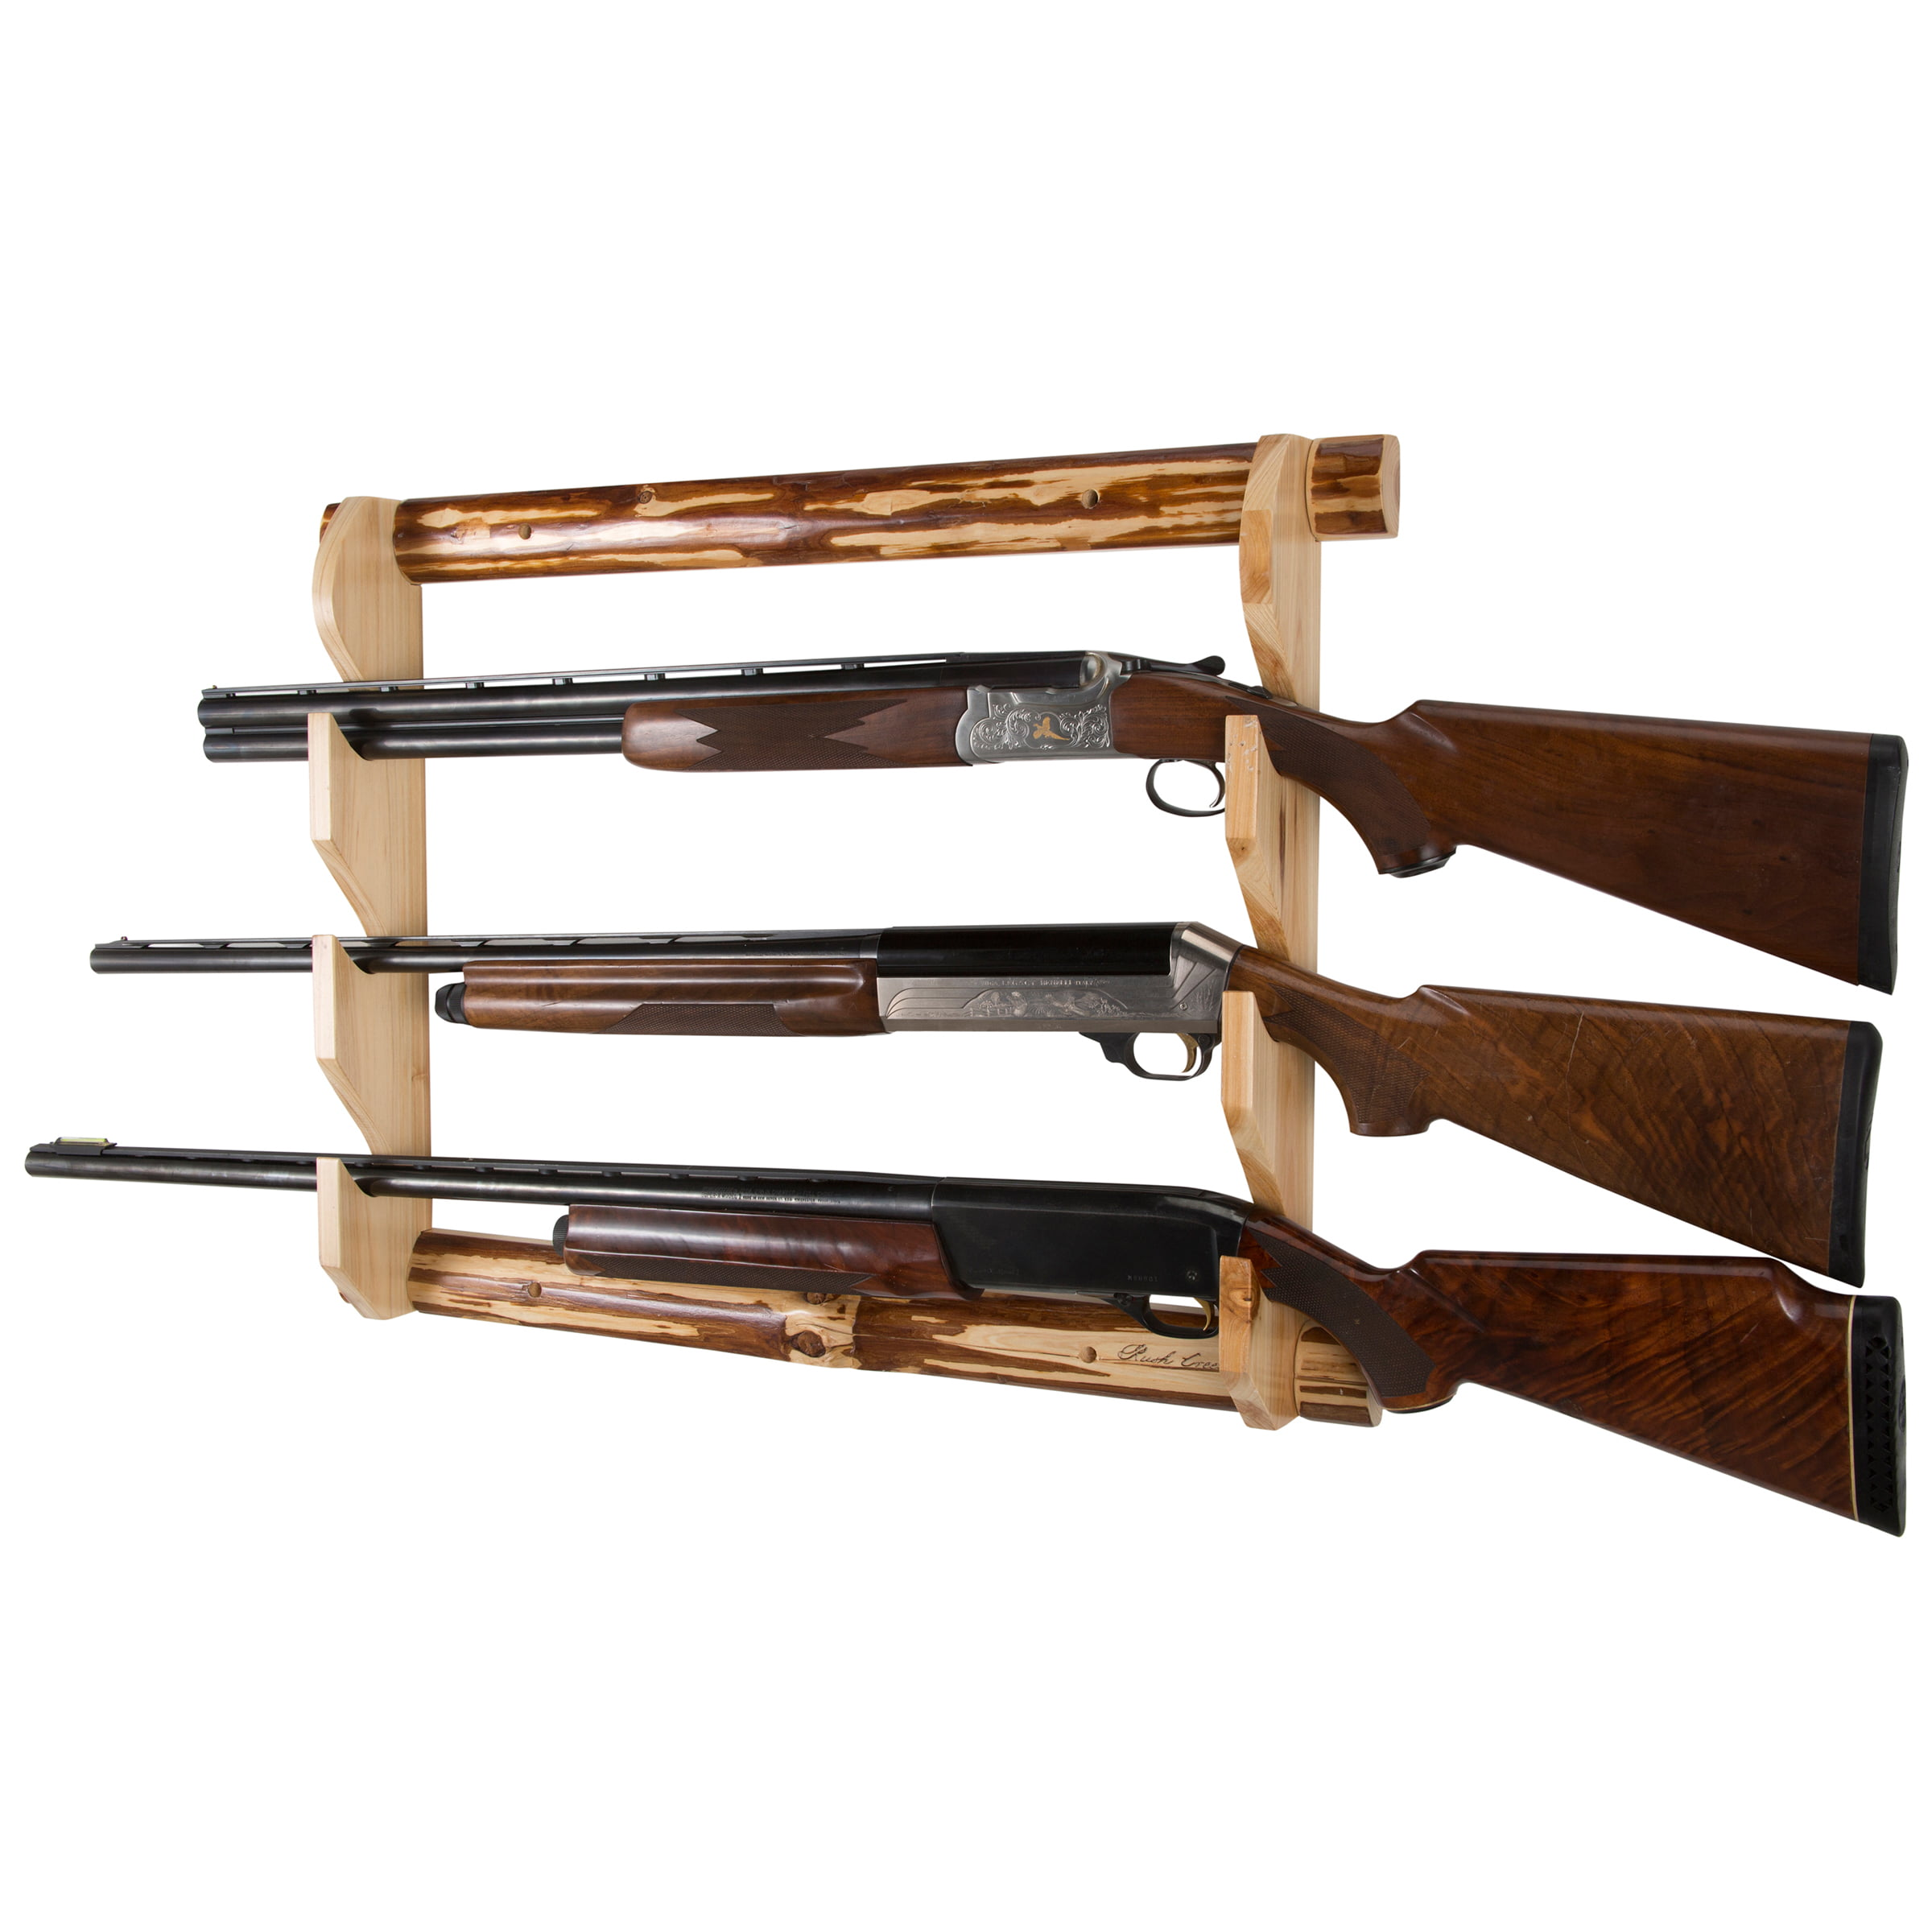 3-Gun Wall Rack by Rush Creek Creations